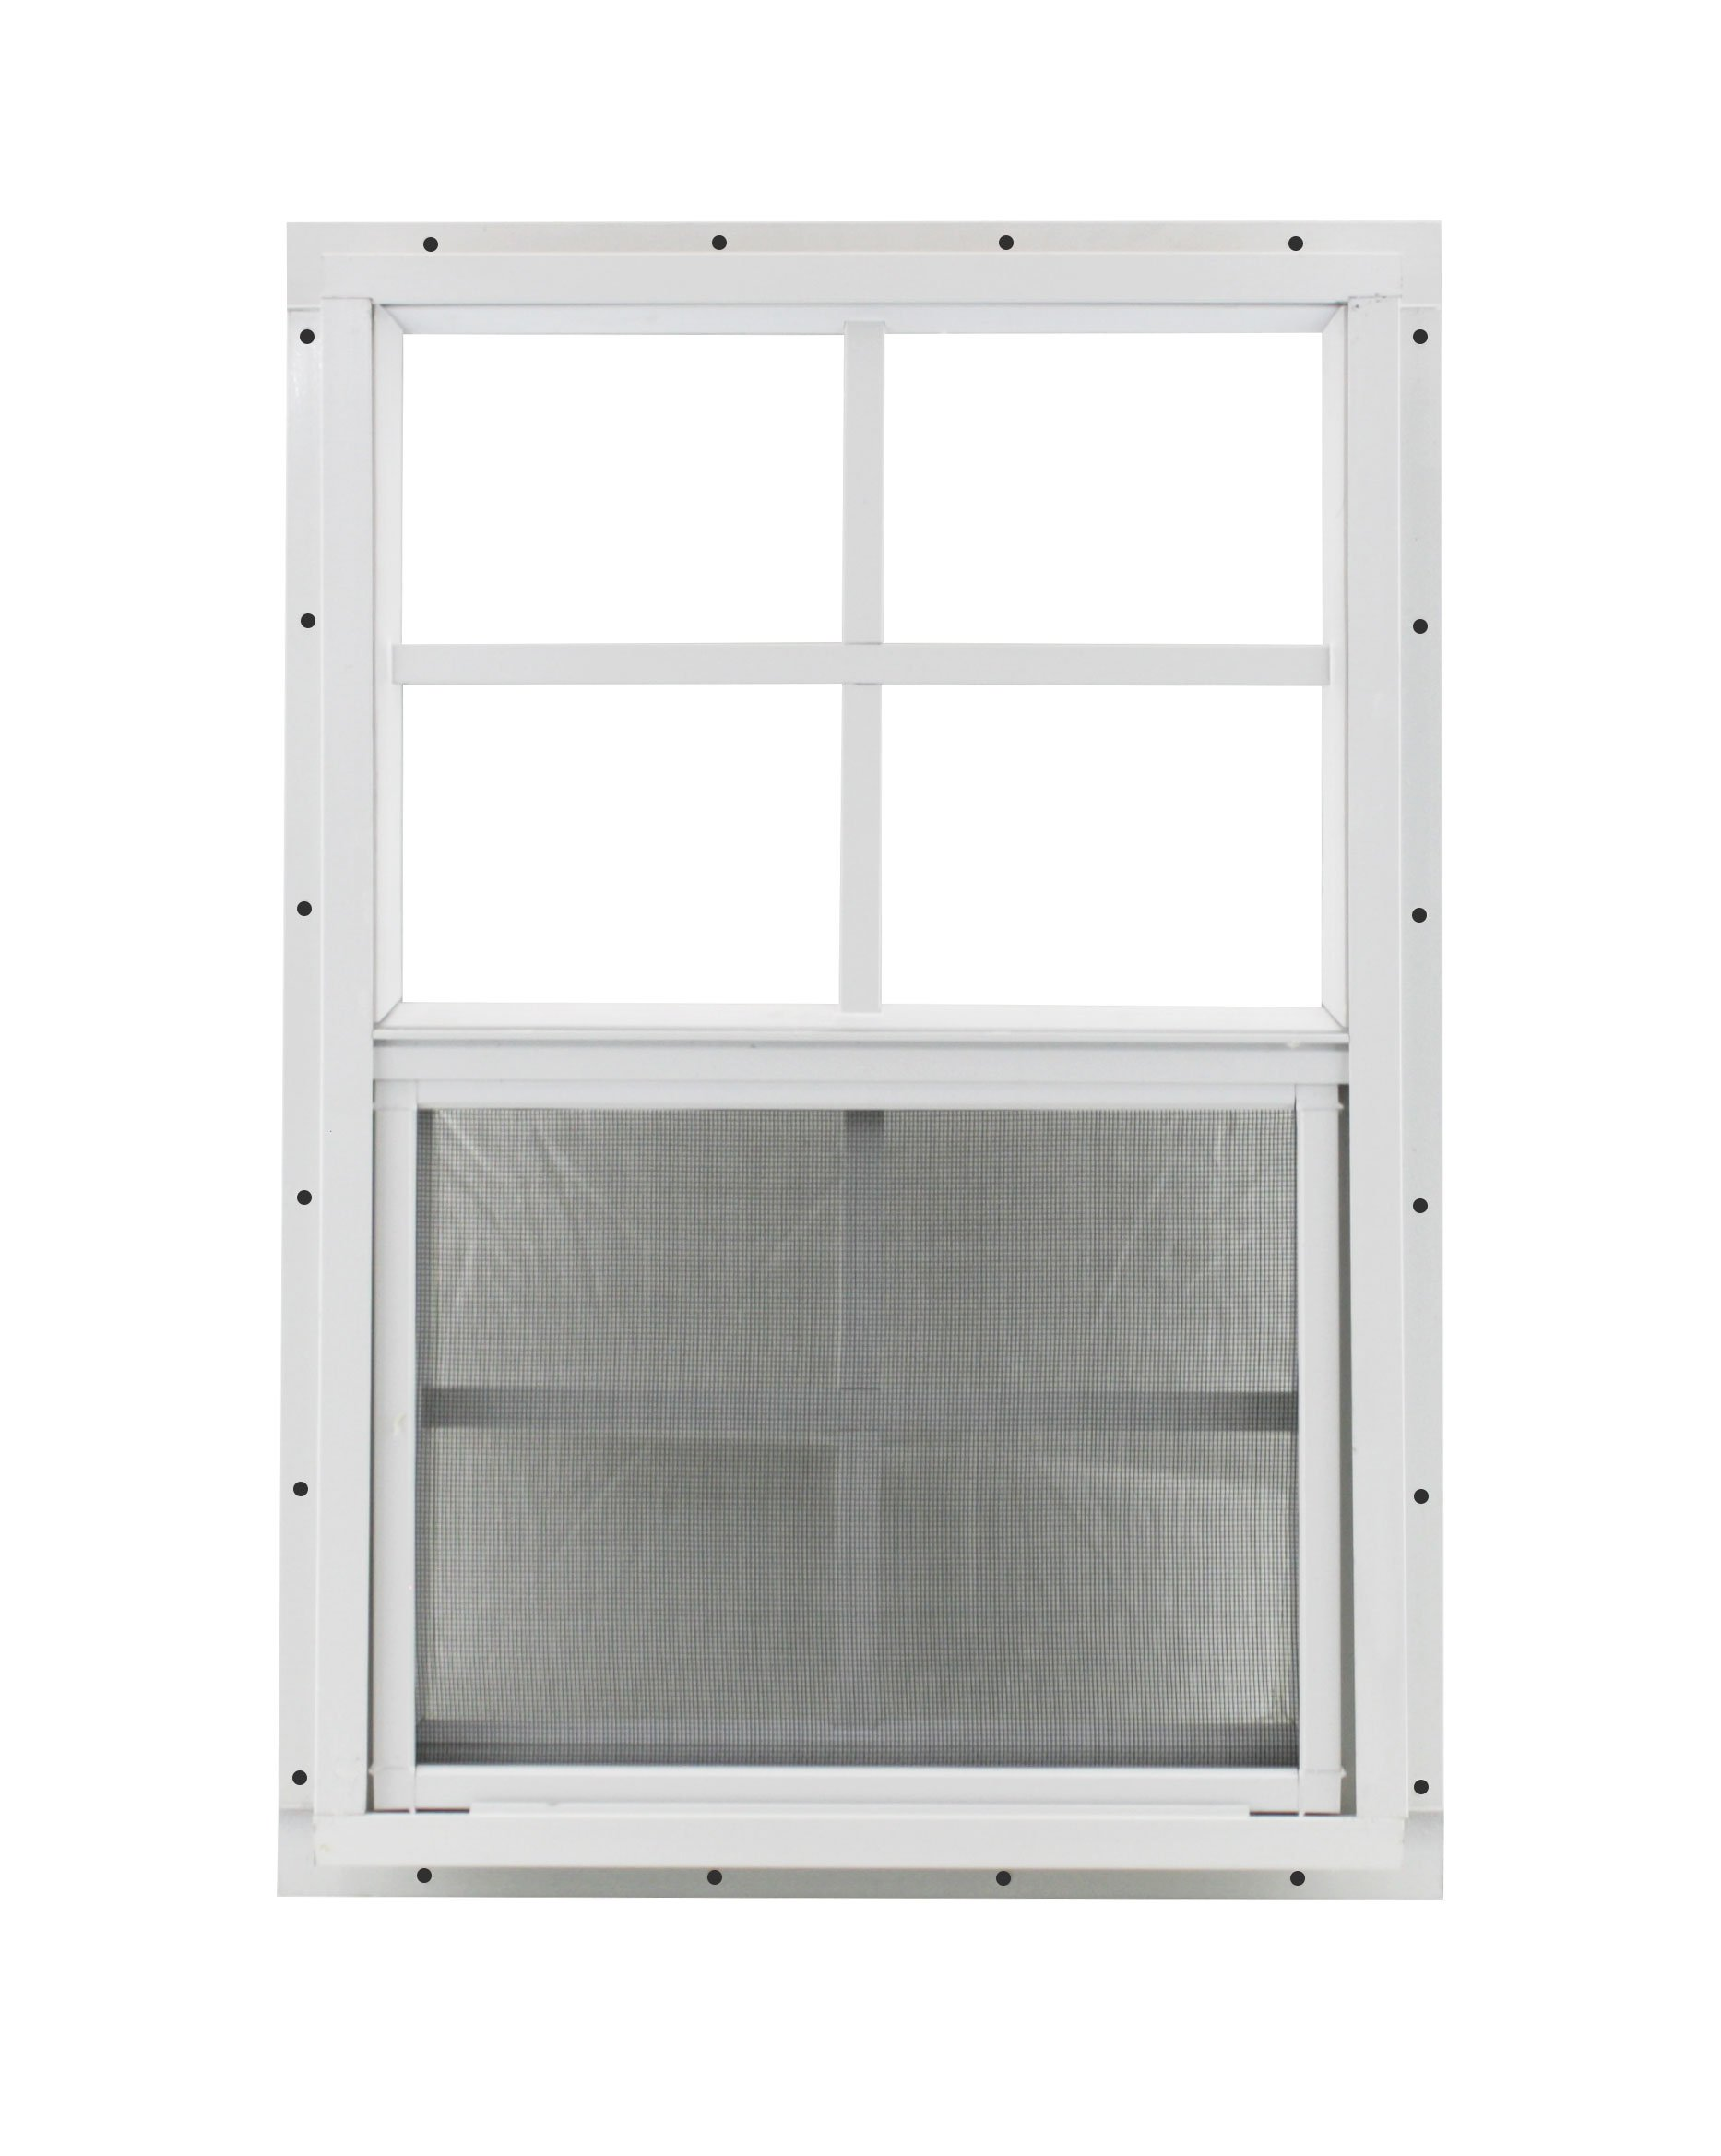 Shed Window 14 X 21 White J-Channel Mount Safety Glass